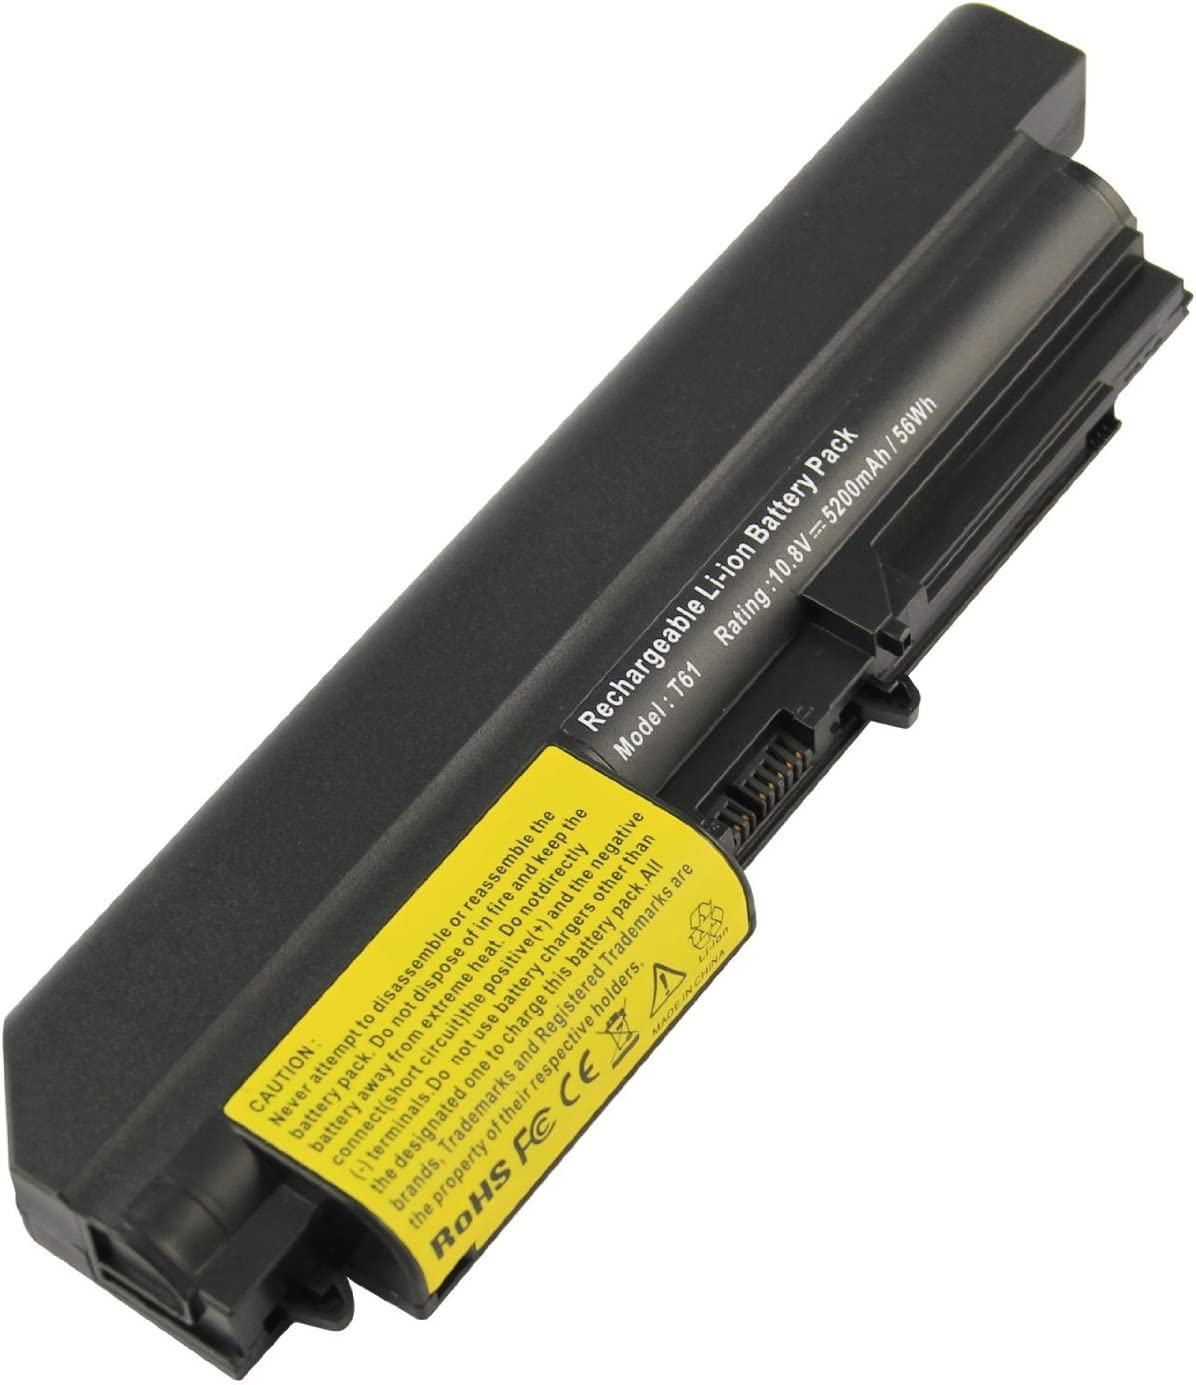 Futurebatt Laptop Battery for Lenovo Thinkpad R400 7443 T400 2764 7417, ThinkPad R61 R61i 10.8V 5200mAh